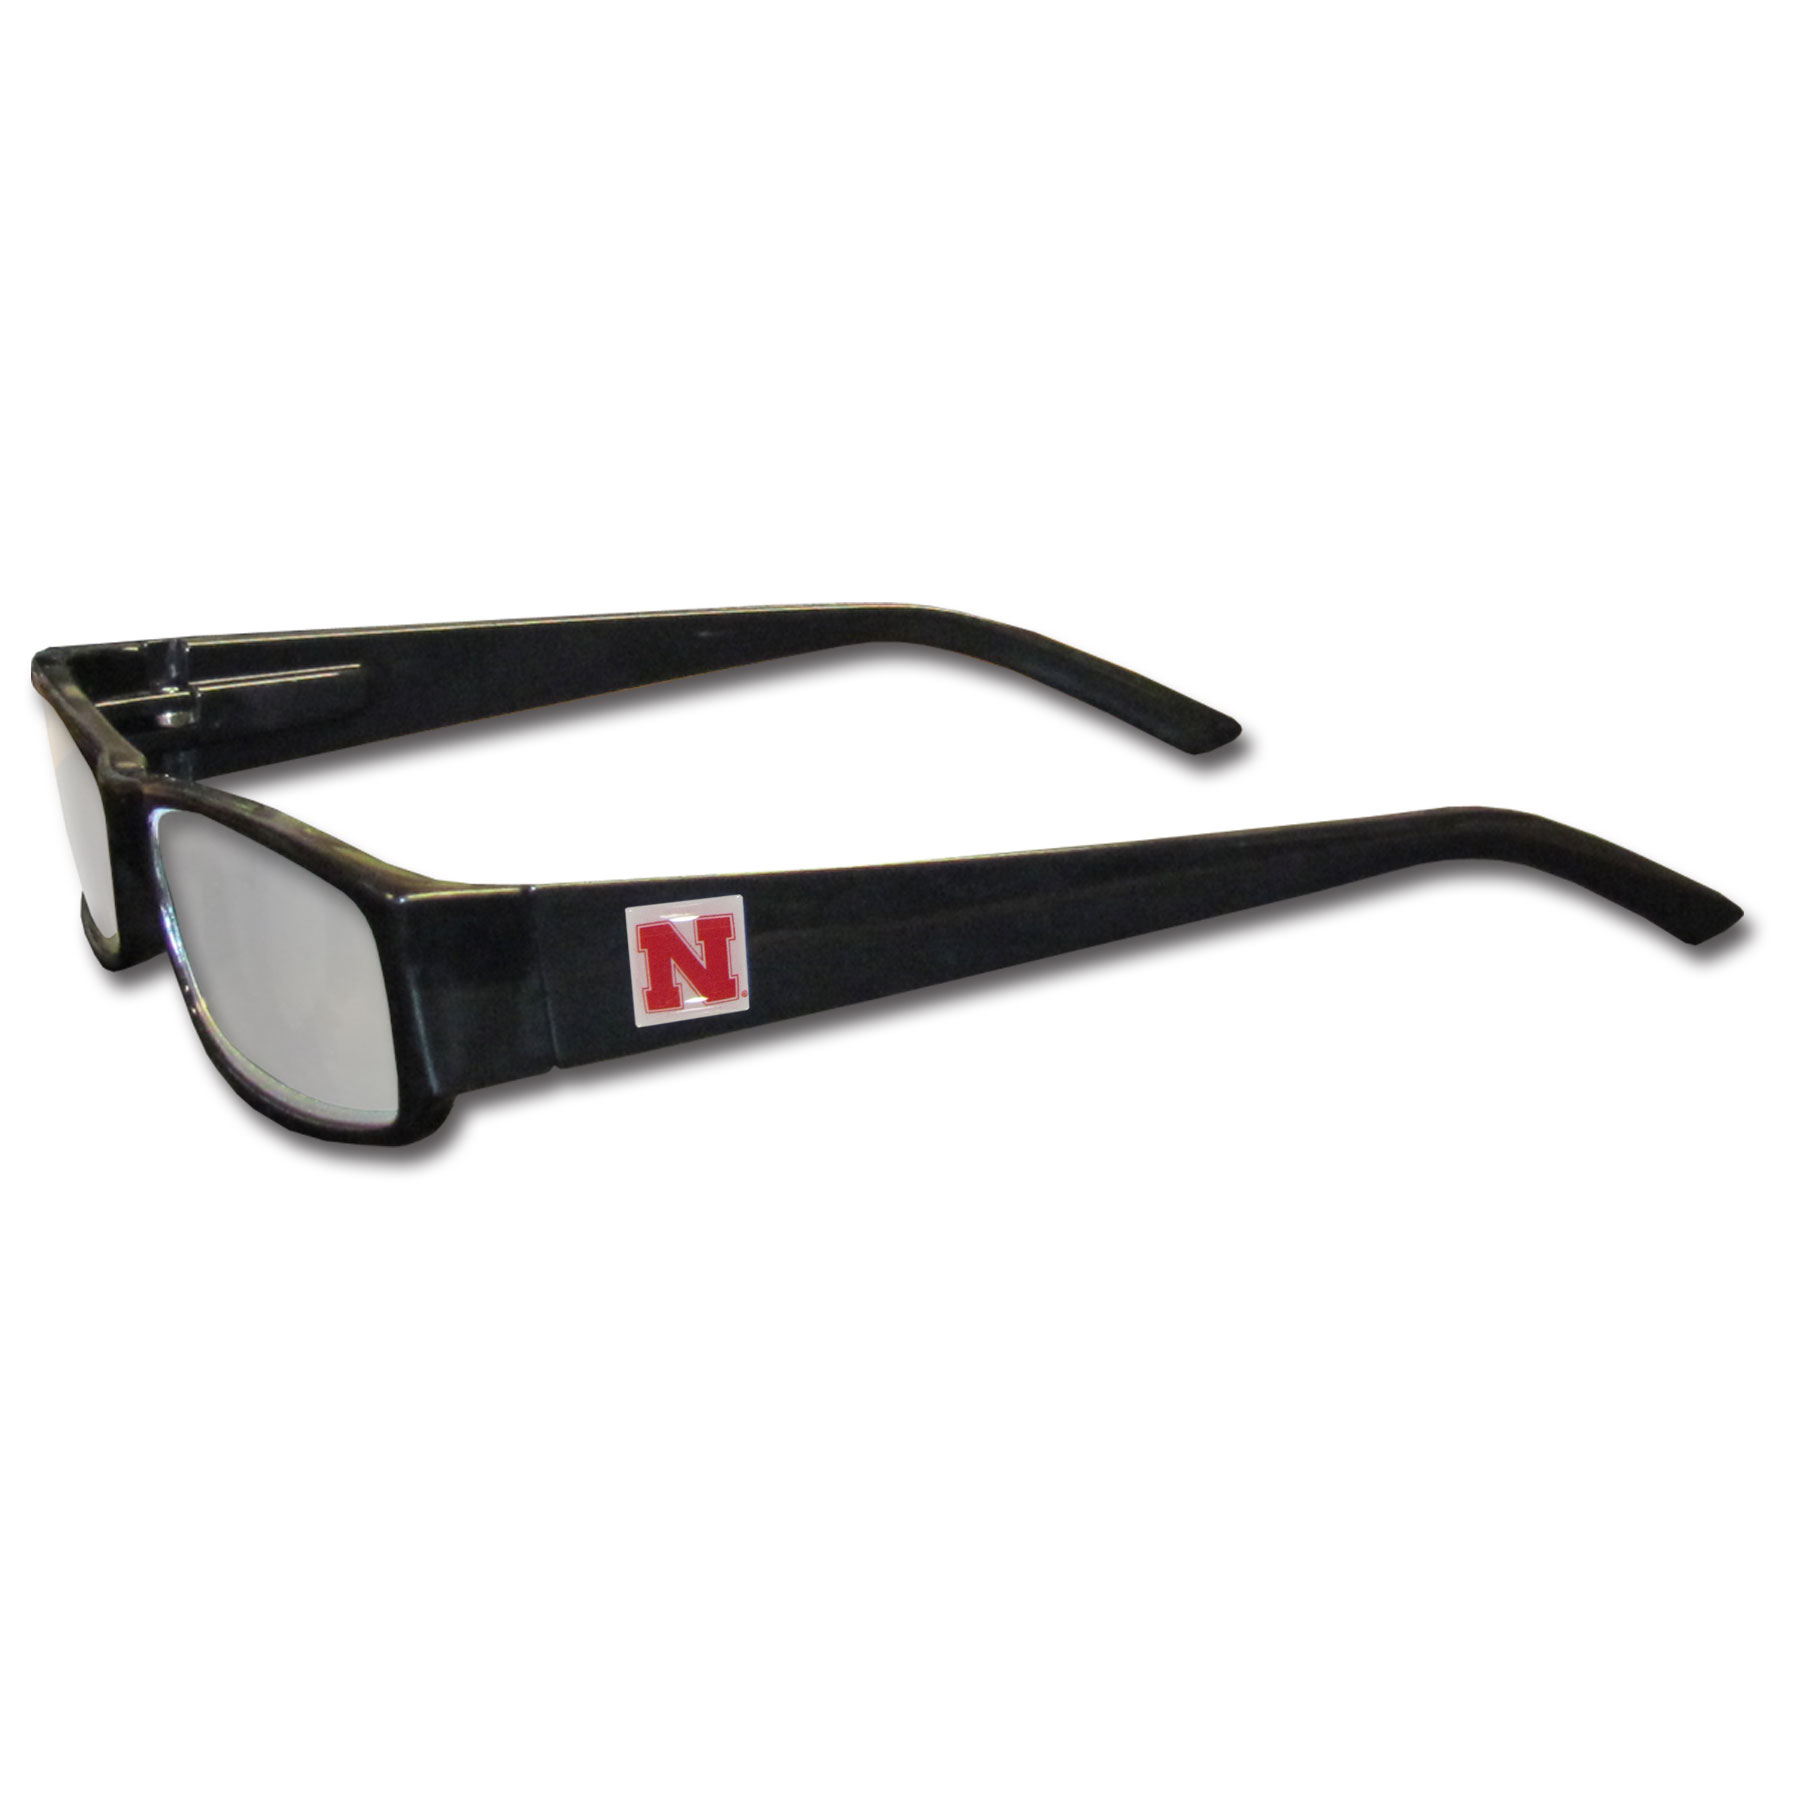 Nebraska Cornhuskers Black Reading Glasses +1.25 - Our Nebraska Cornhuskers reading glasses are 5.25 inches wide and feature the team logo on each arm. Magnification Power 1.25